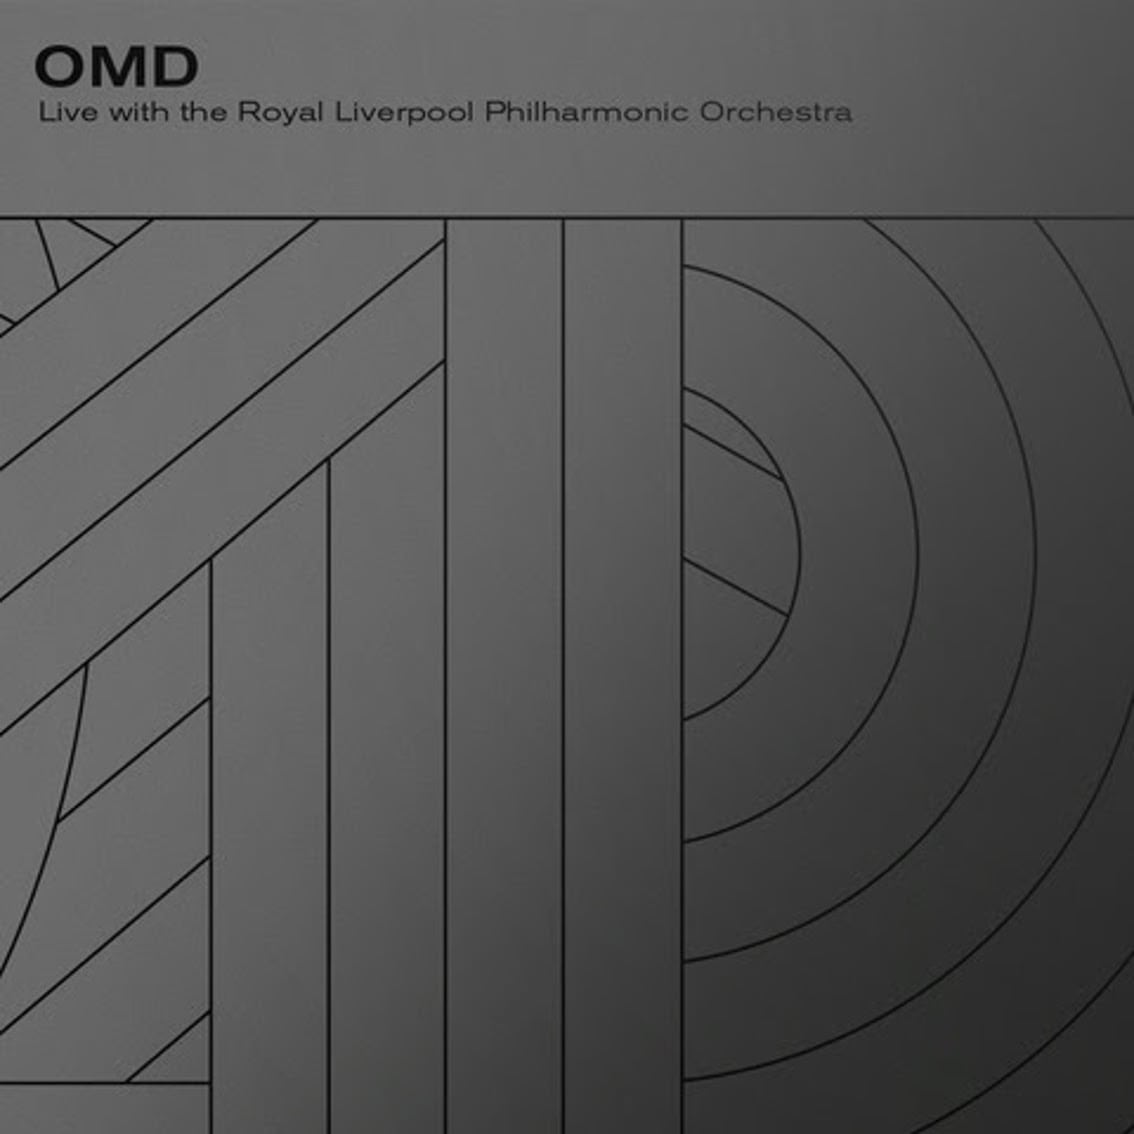 OMD to release new live album'Live with the Royal Liverpool Philharmonic Orchestra'